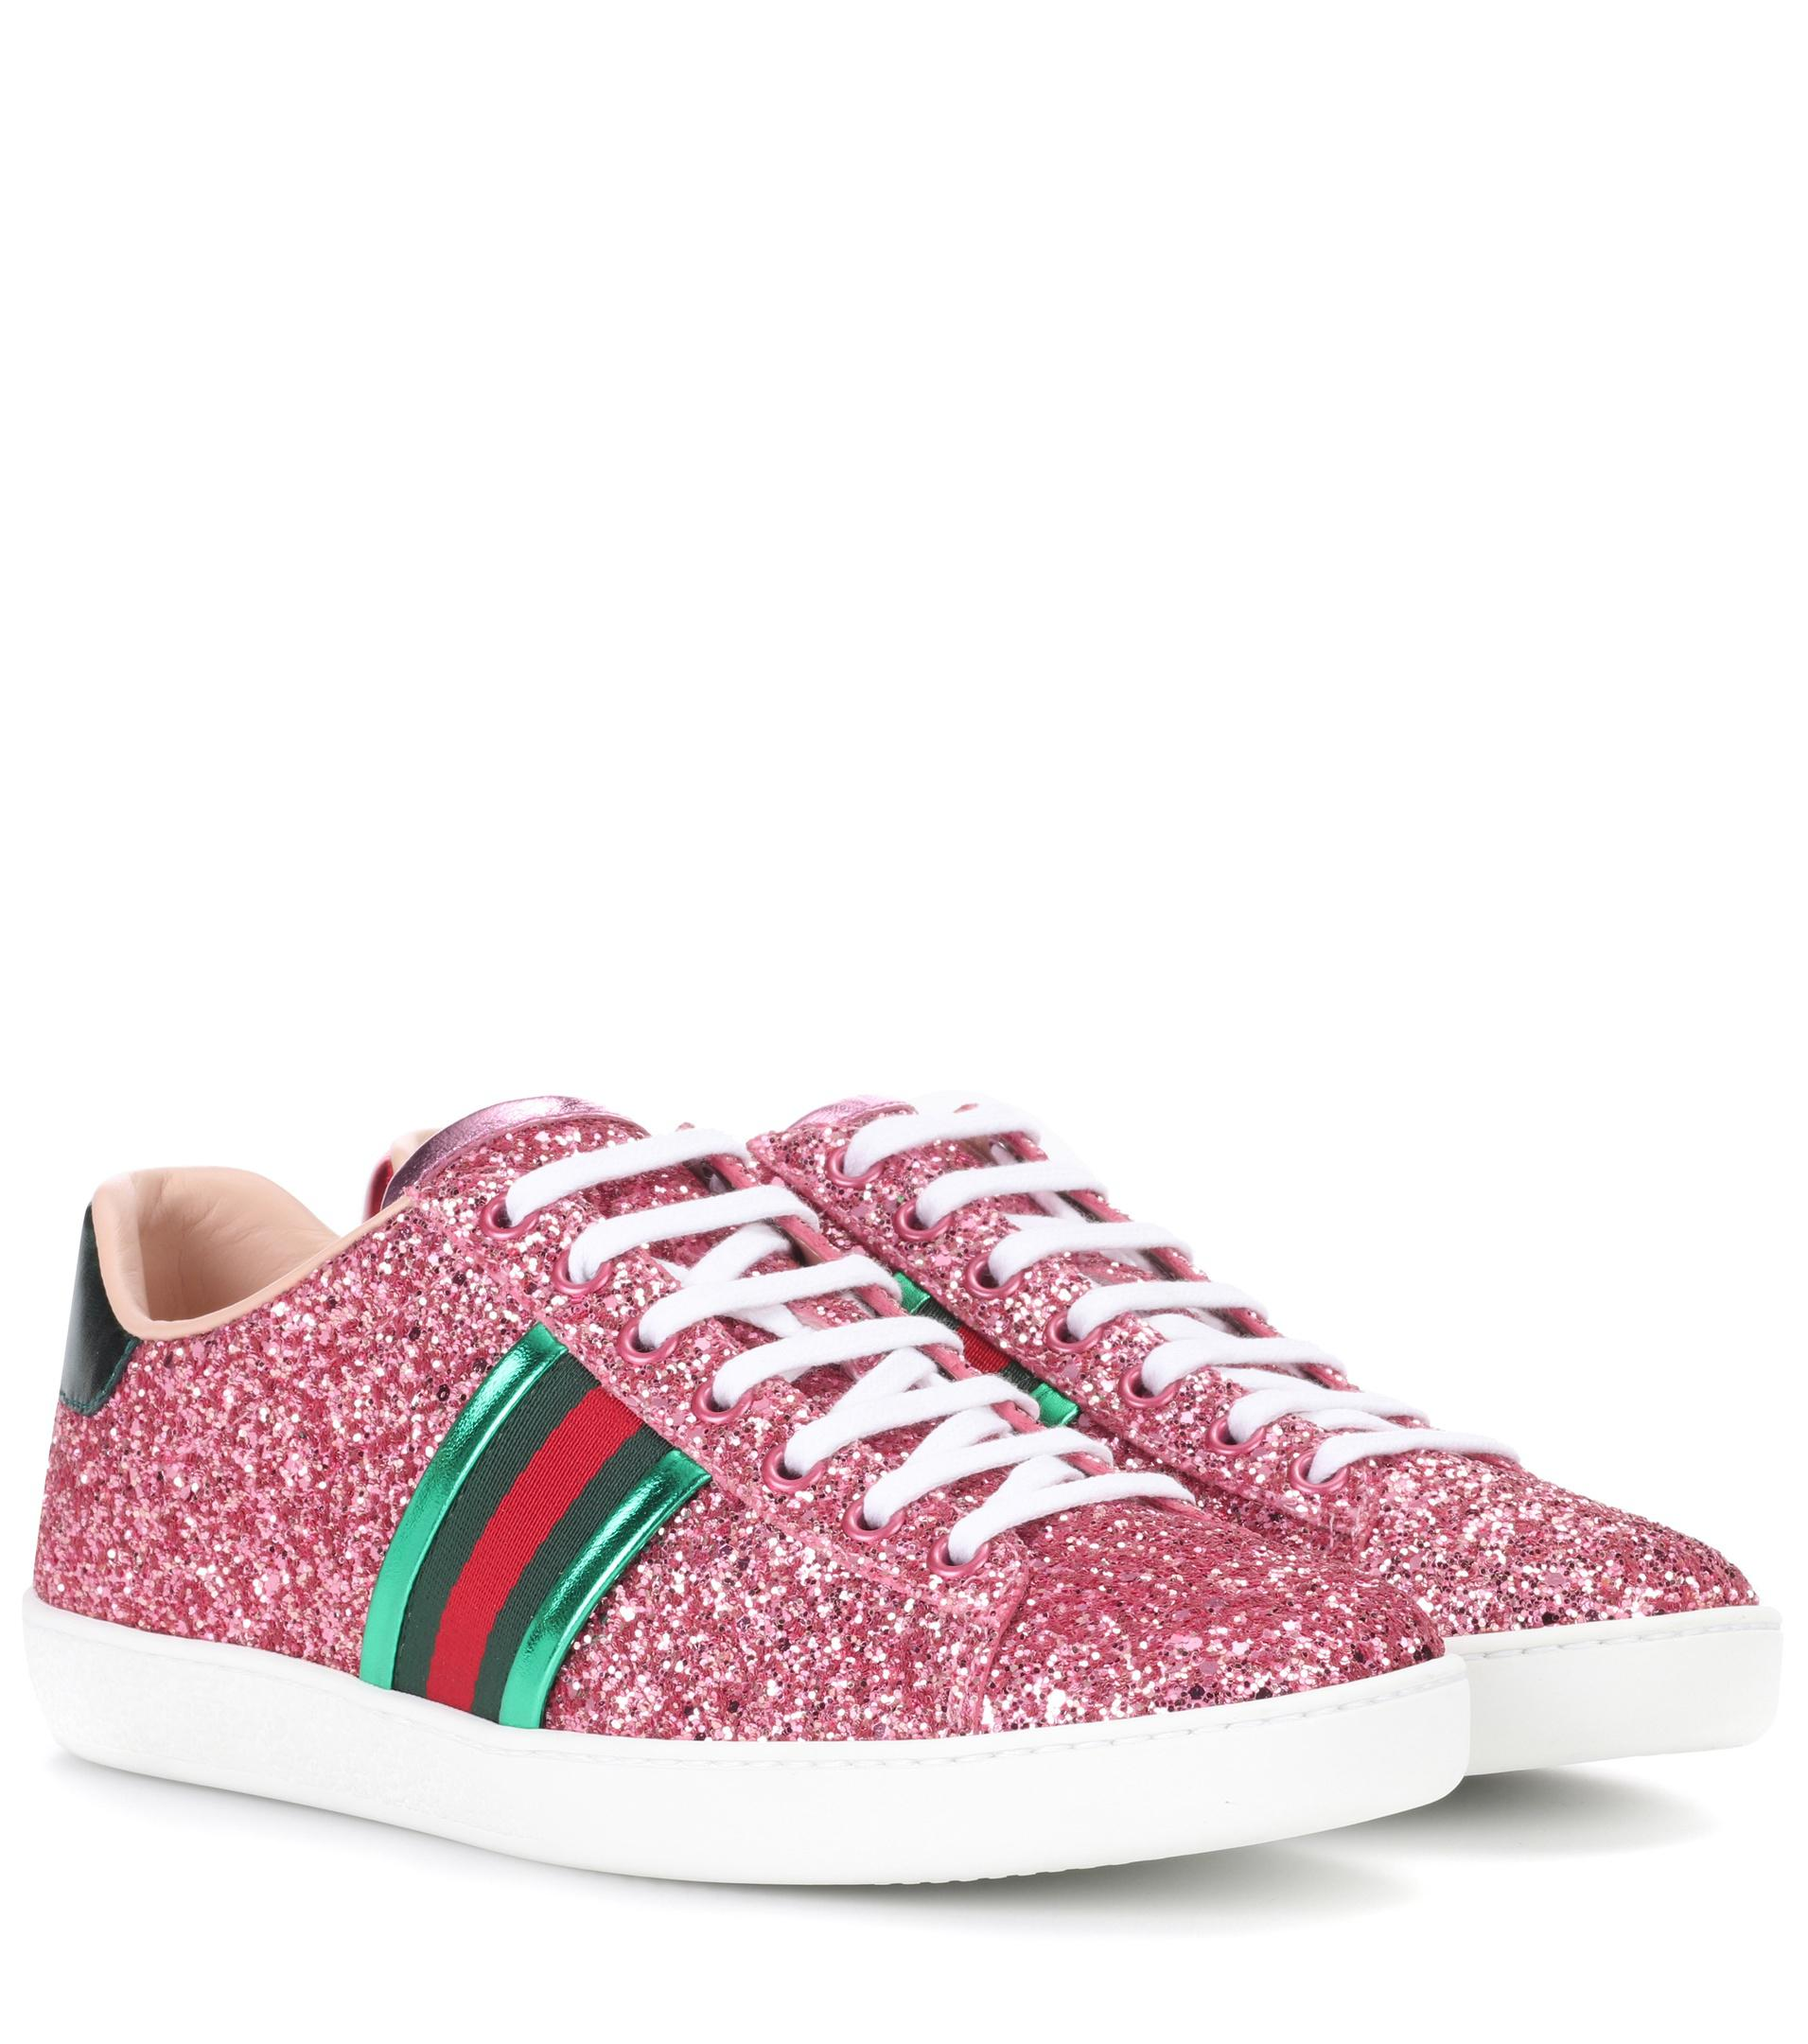 bf75367998e Lyst - Gucci Ace Glitter Sneakers in Pink